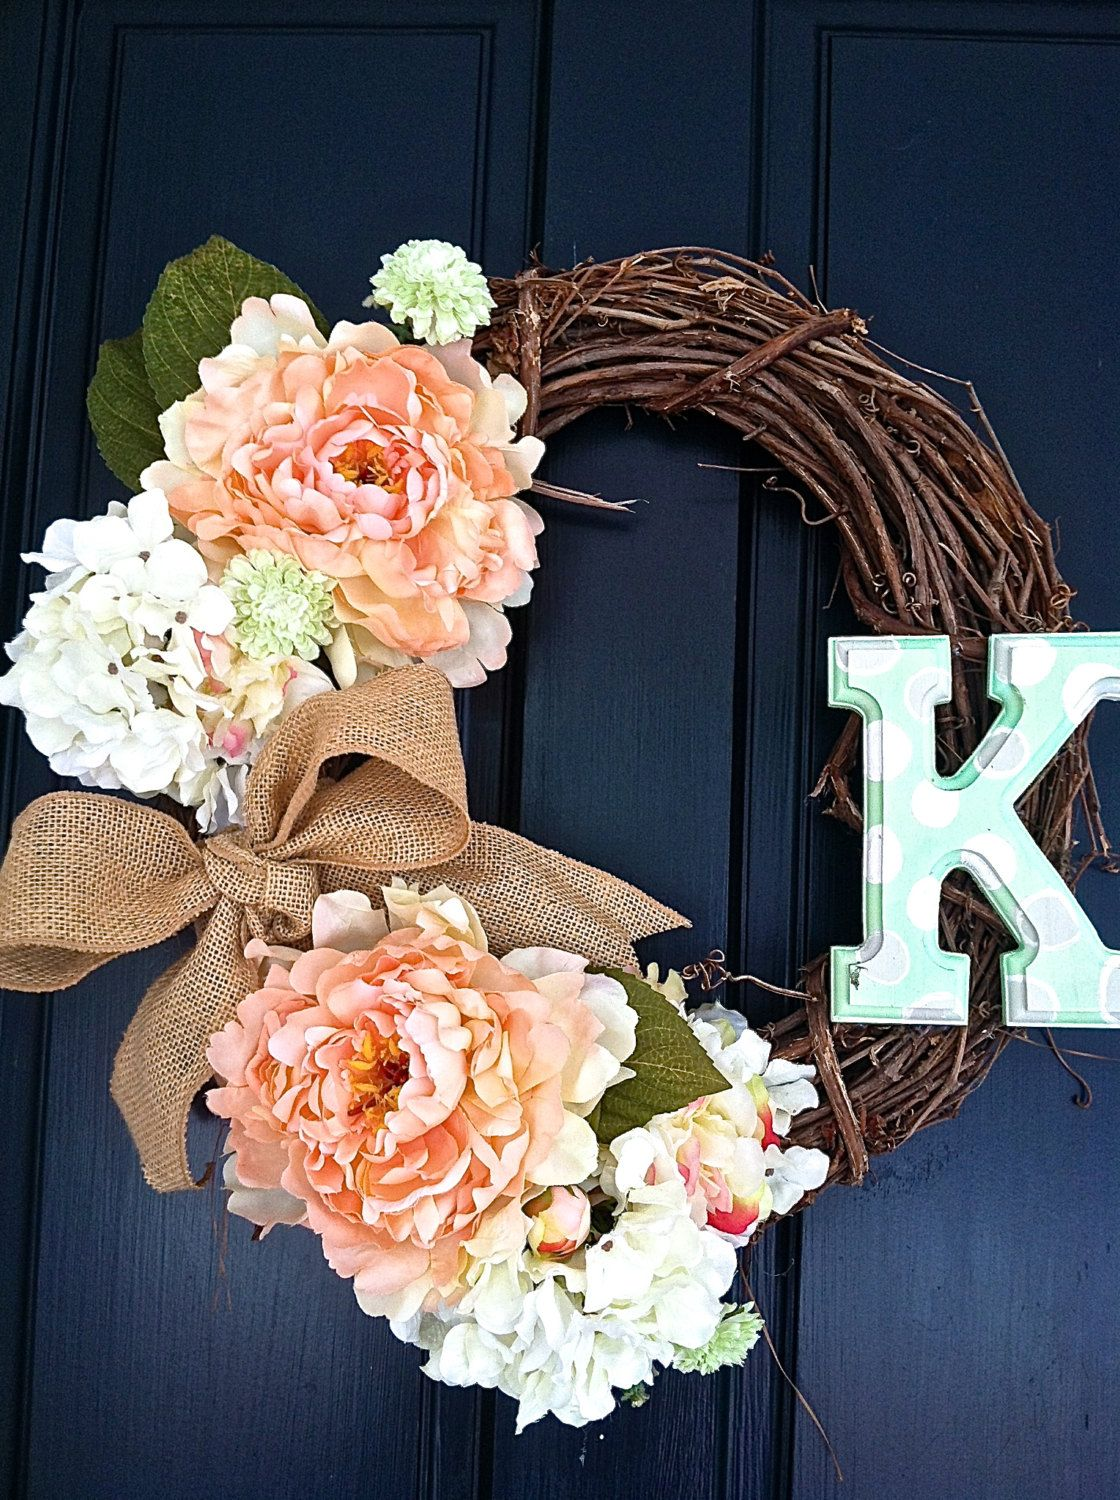 Personalized Wreath by PKNISKERN on Etsy